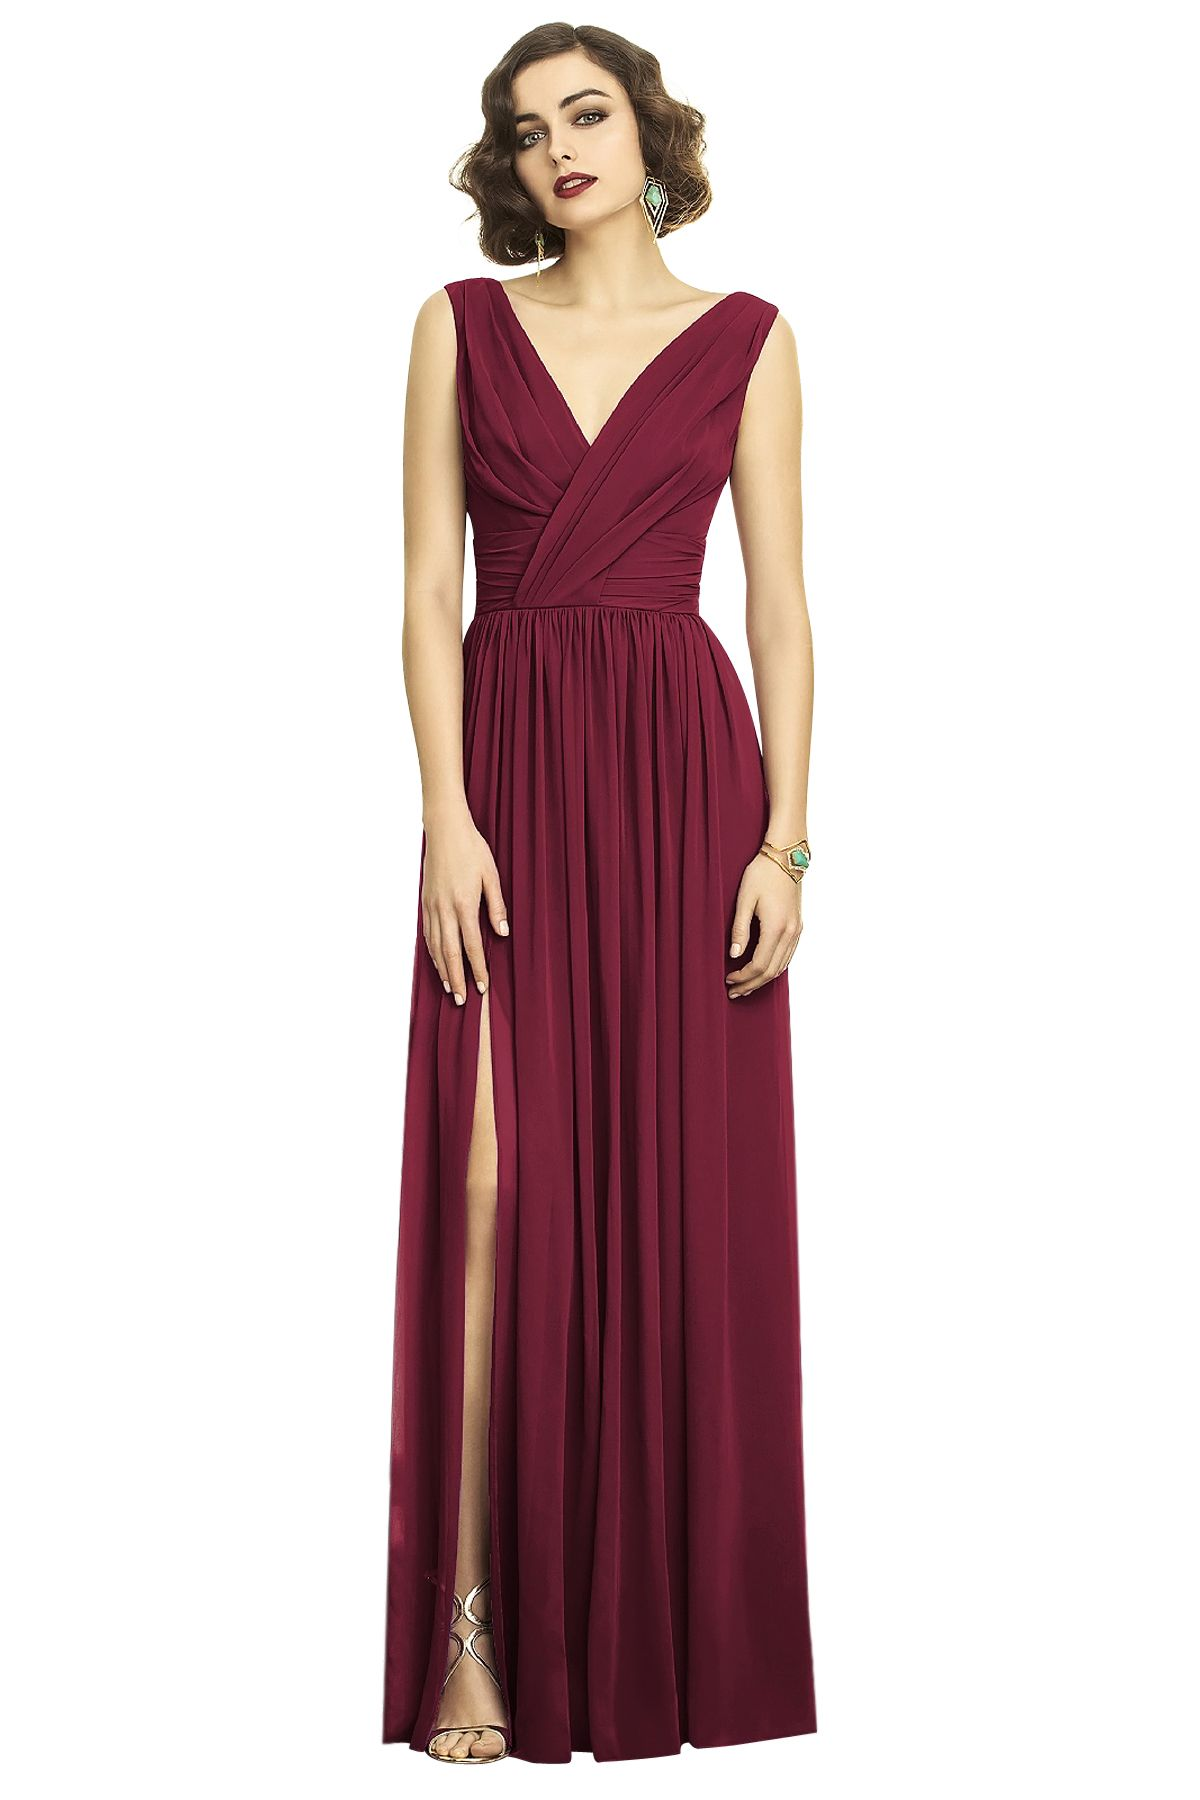 Dessy 2894 bridesmaid dress weddington way color burgundy dessy 2894 bridesmaid dress weddington way color burgundy this would be perfect ombrellifo Images